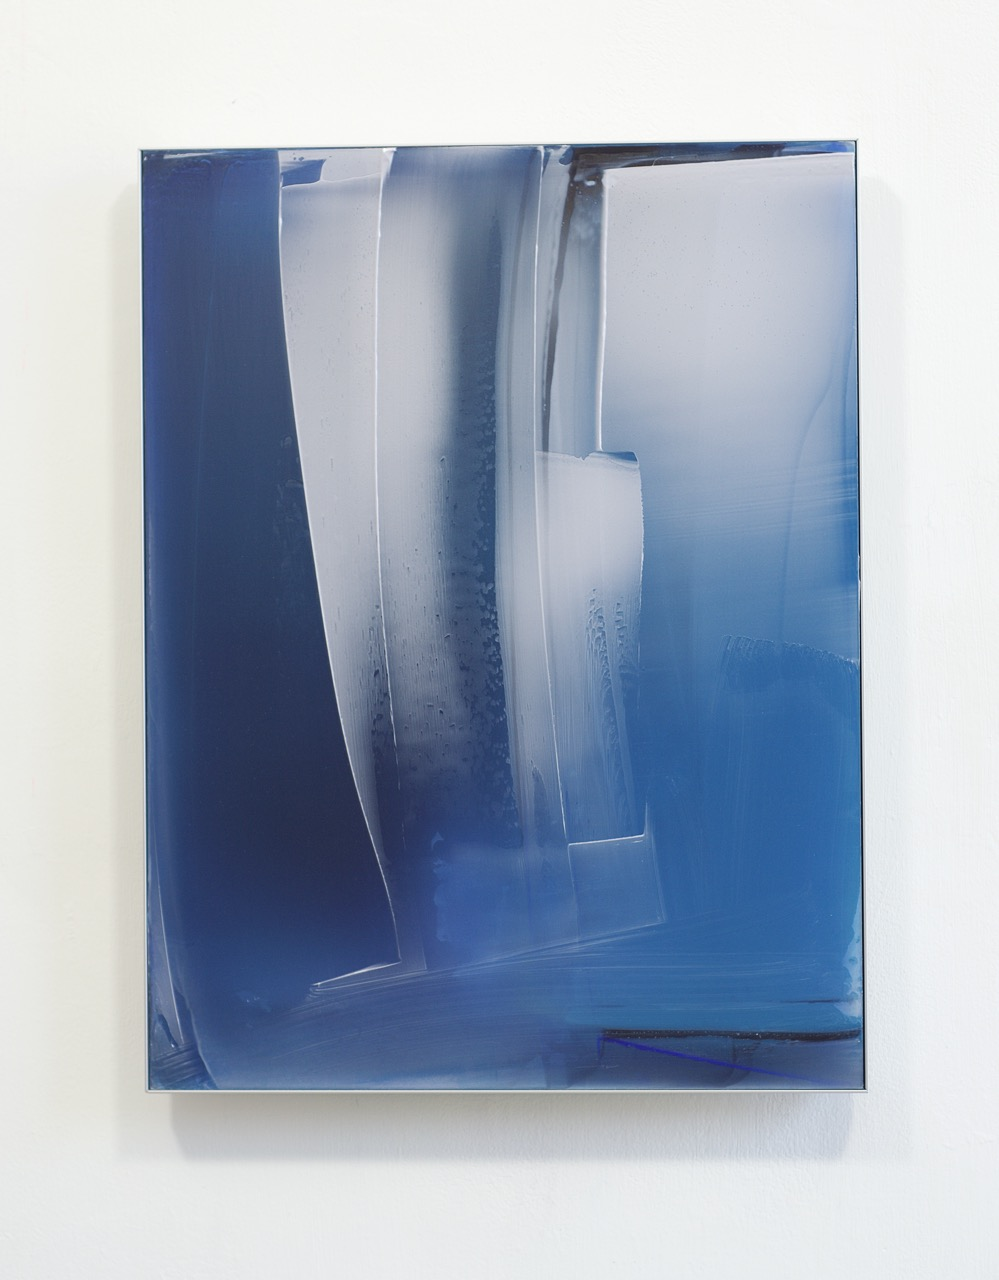 Blue Composition for Miami, 2016, 60x45cm.jpg